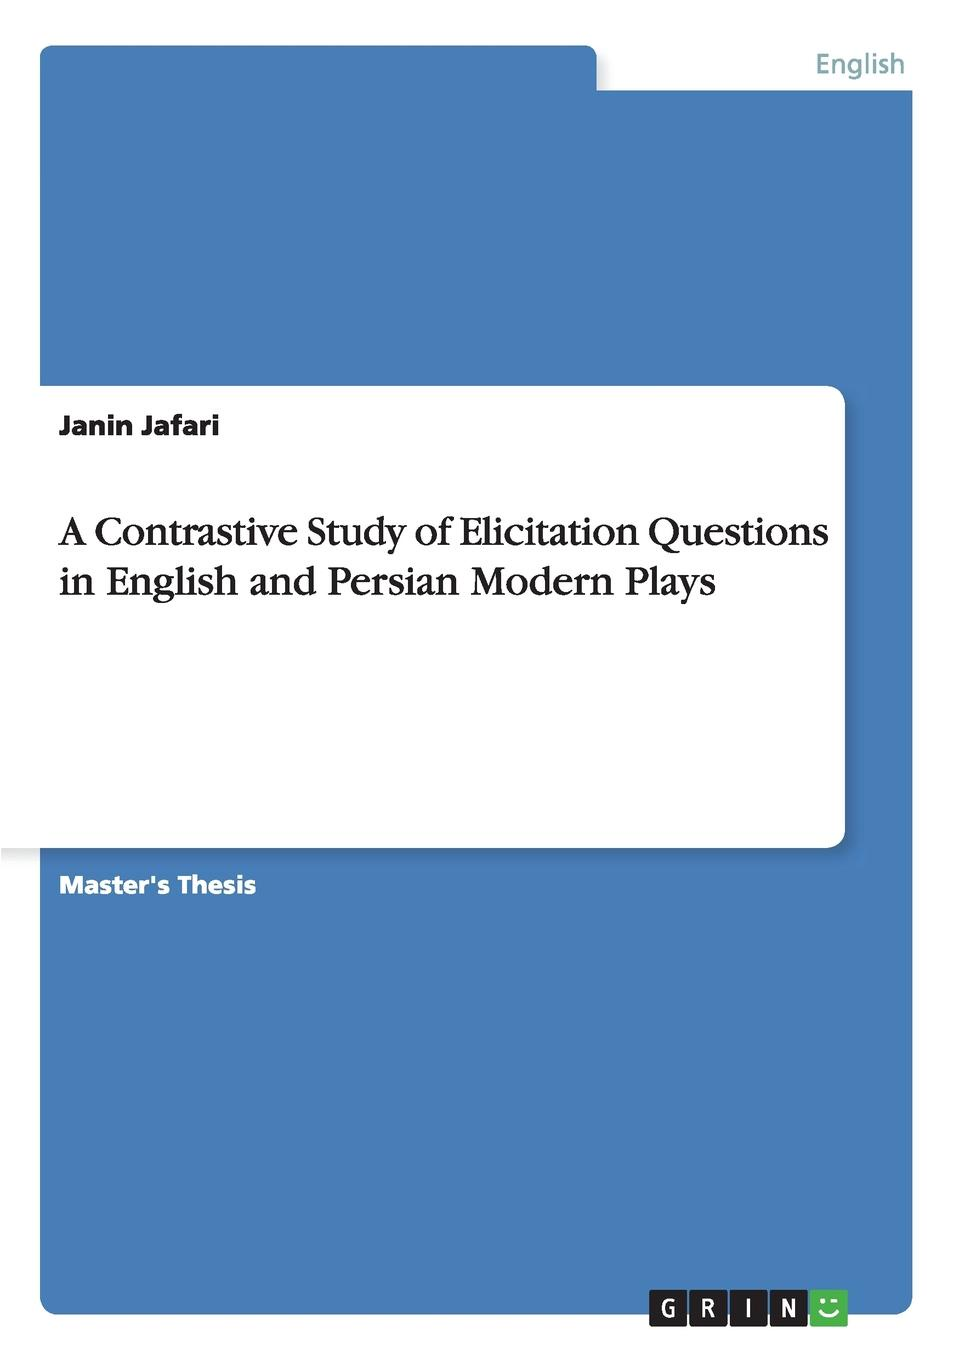 Janin Jafari A Contrastive Study of Elicitation Questions in English and Persian Modern Plays ручное зубило persian